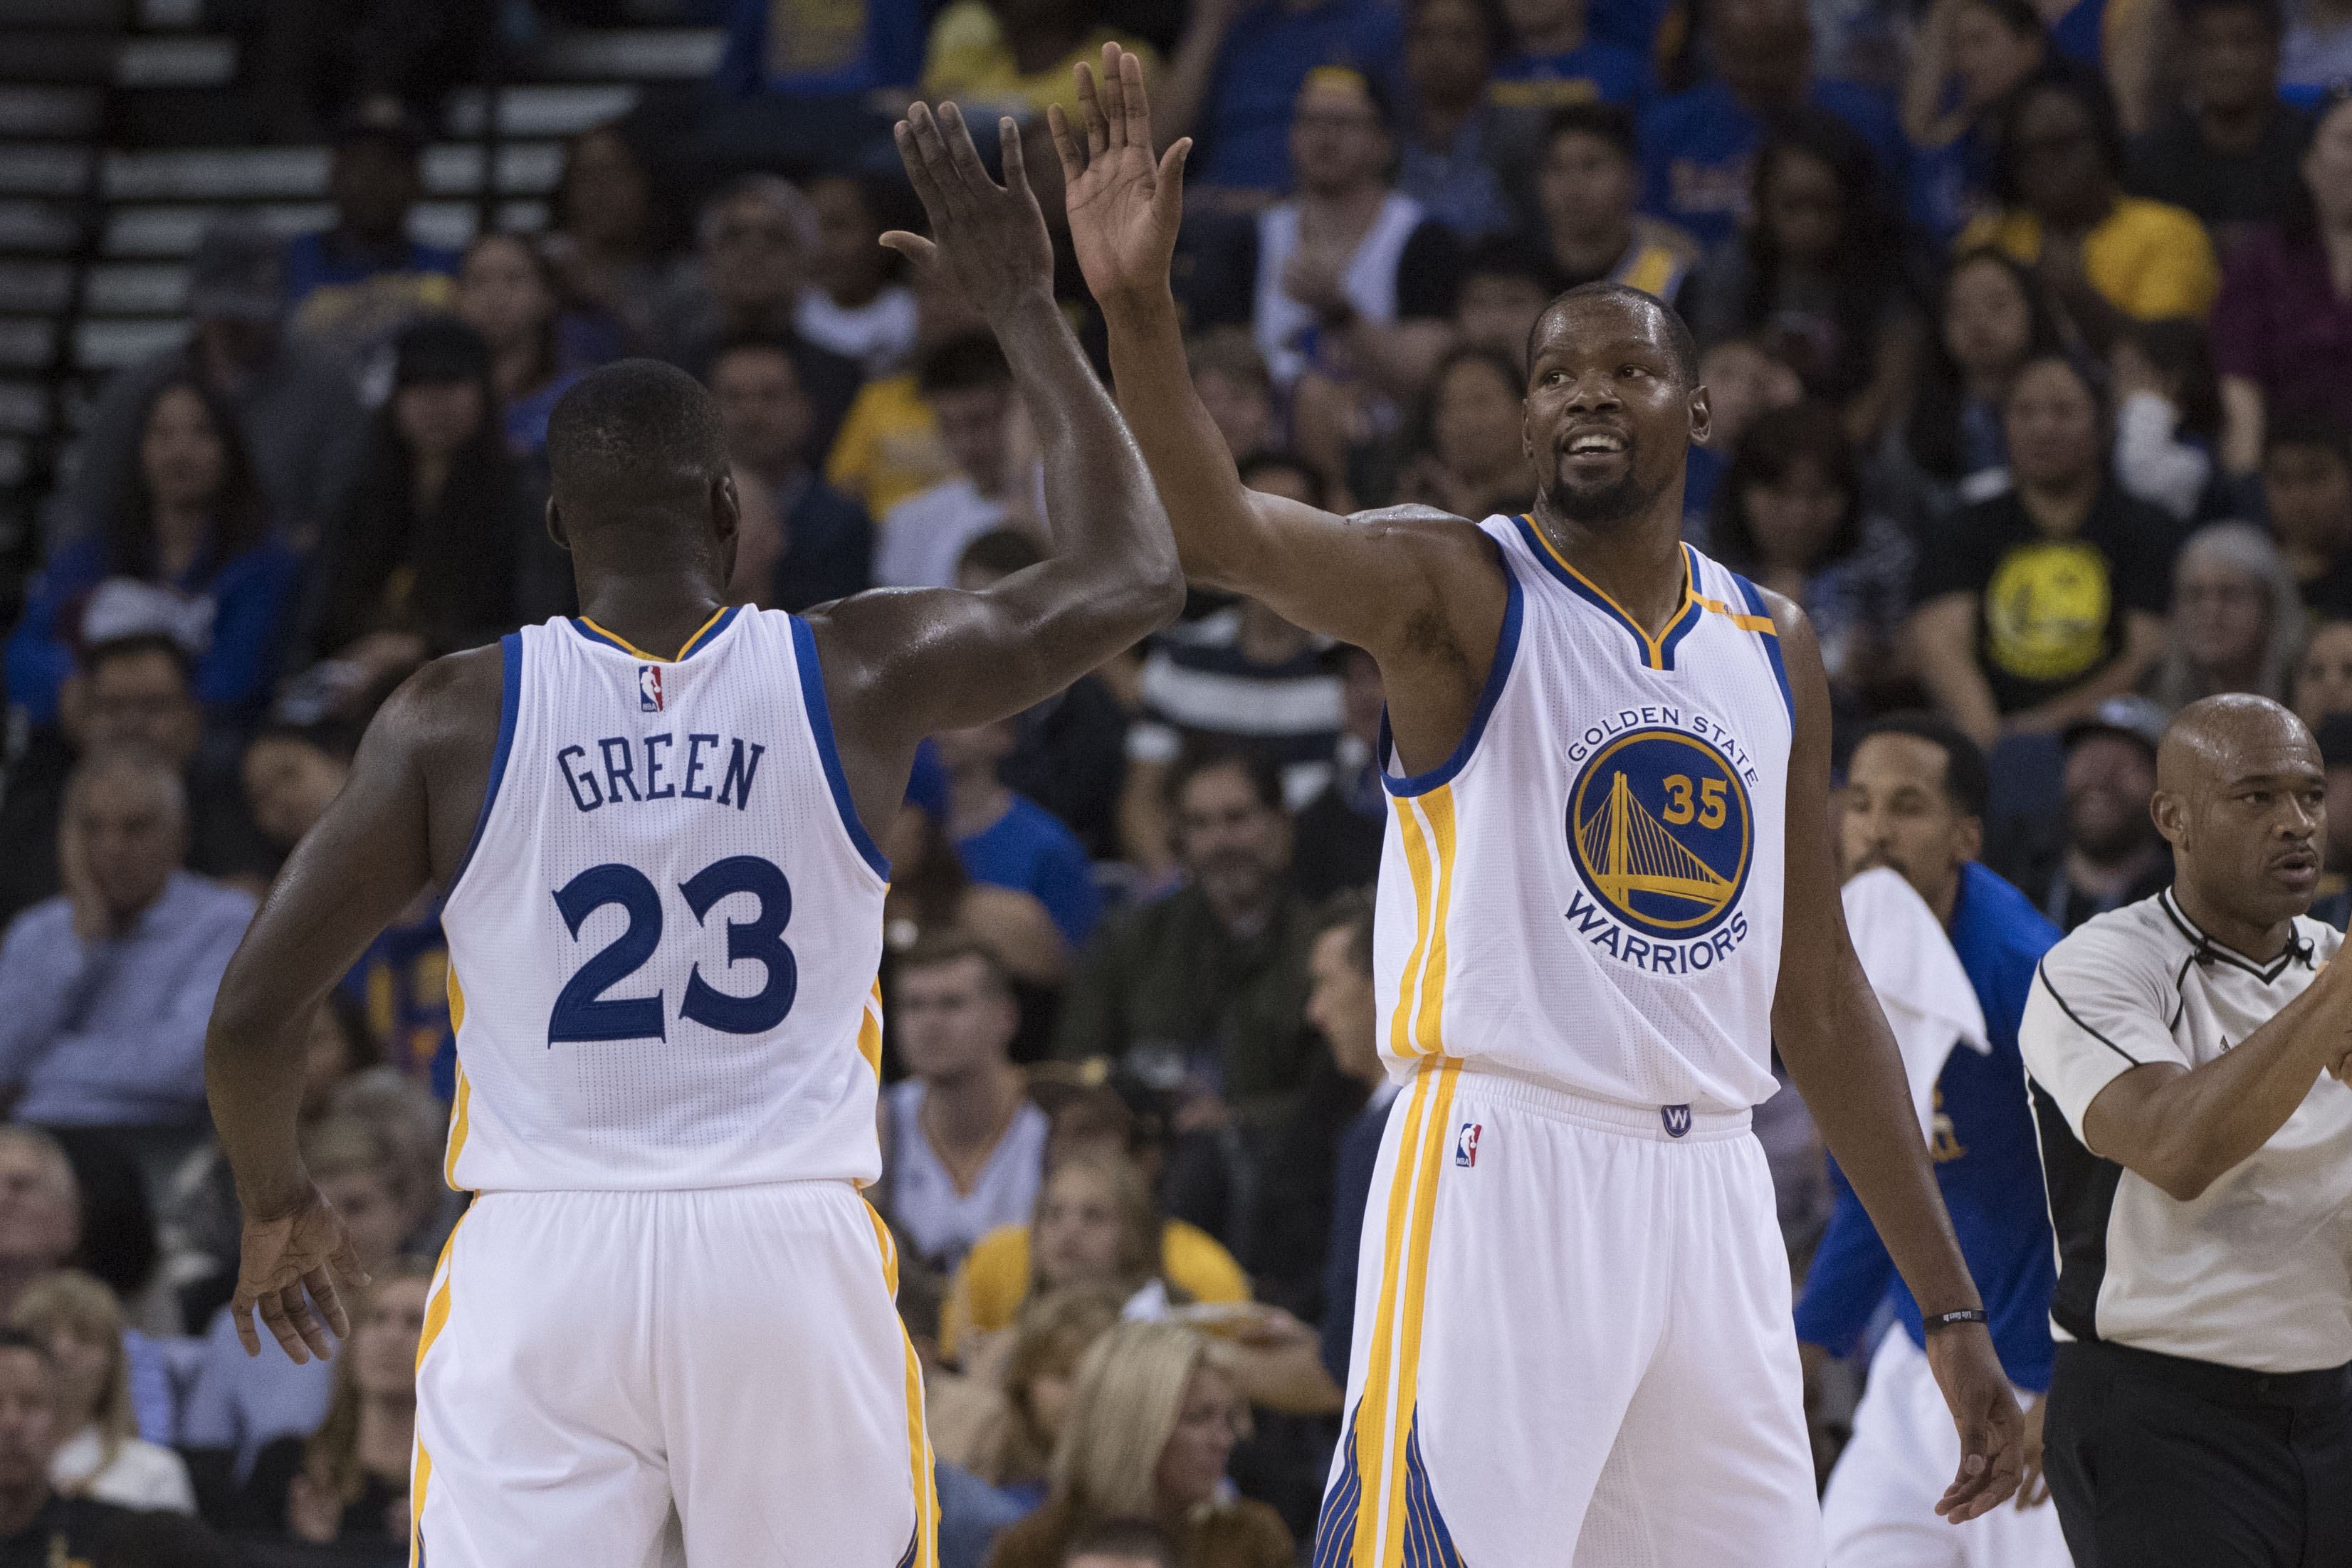 October 4, 2016; Oakland, CA, USA; Golden State Warriors forward Kevin Durant (35) celebrates with forward Draymond Green (23) against the Los Angeles Clippers during the second quarter at Oracle Arena. Mandatory Credit: Kyle Terada-USA TODAY Sports